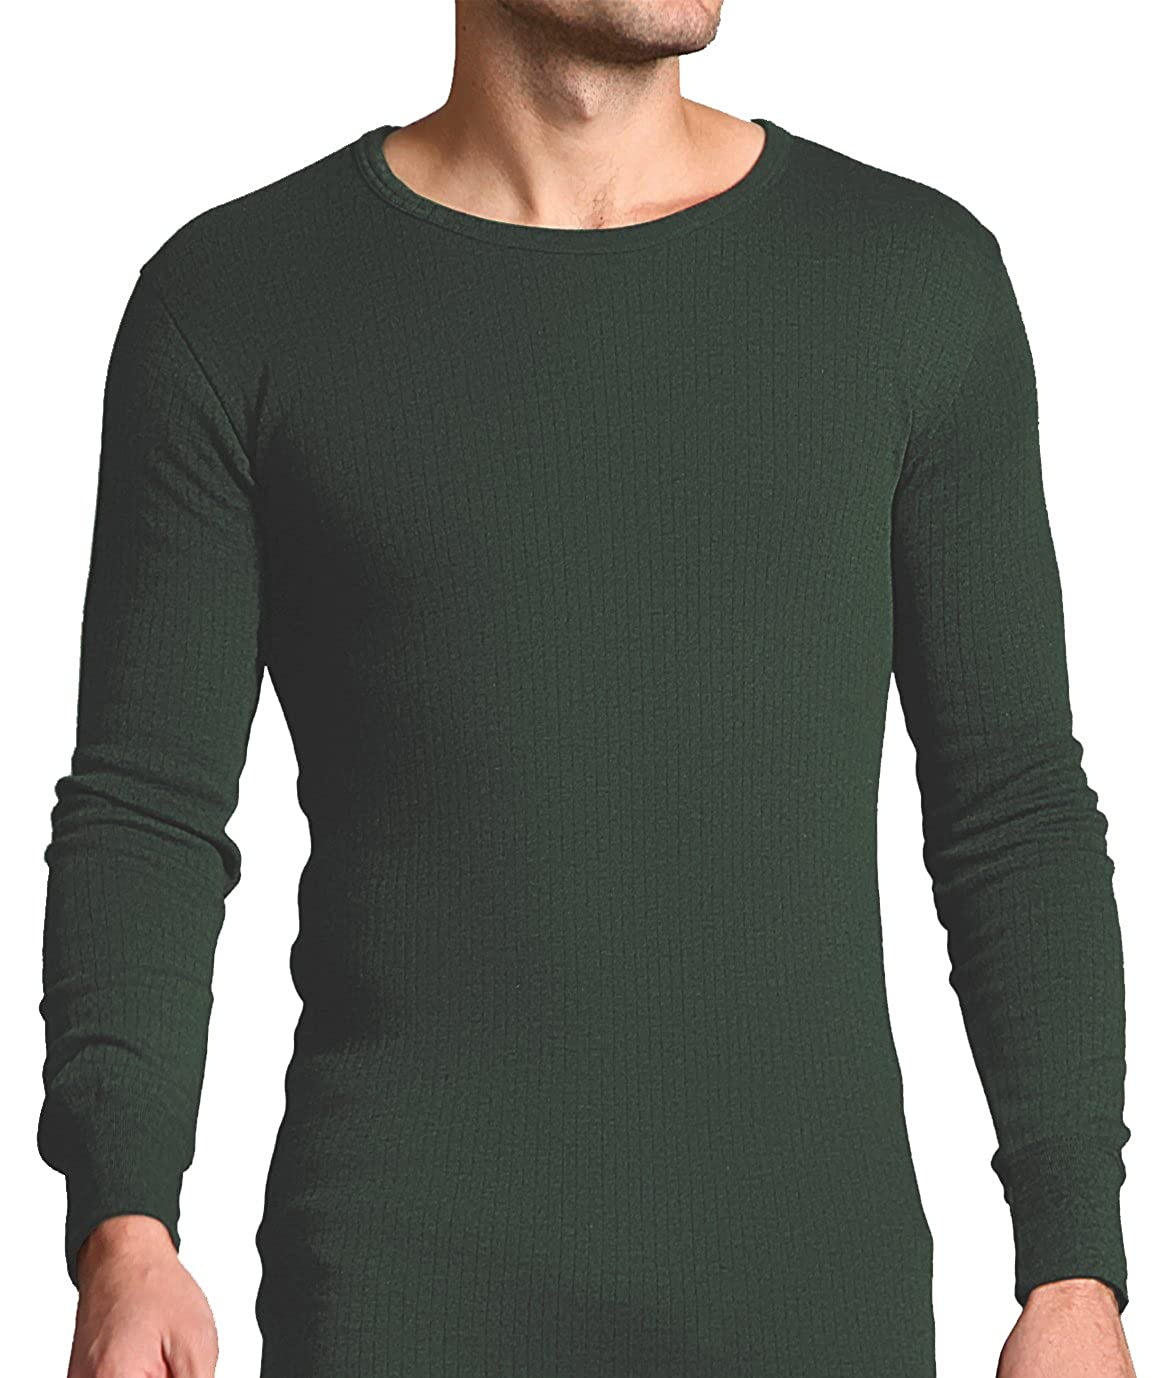 Forestman - Mens Thin Long Sleeve Warm Cotton Thermal Underwear Top Vest Shirt